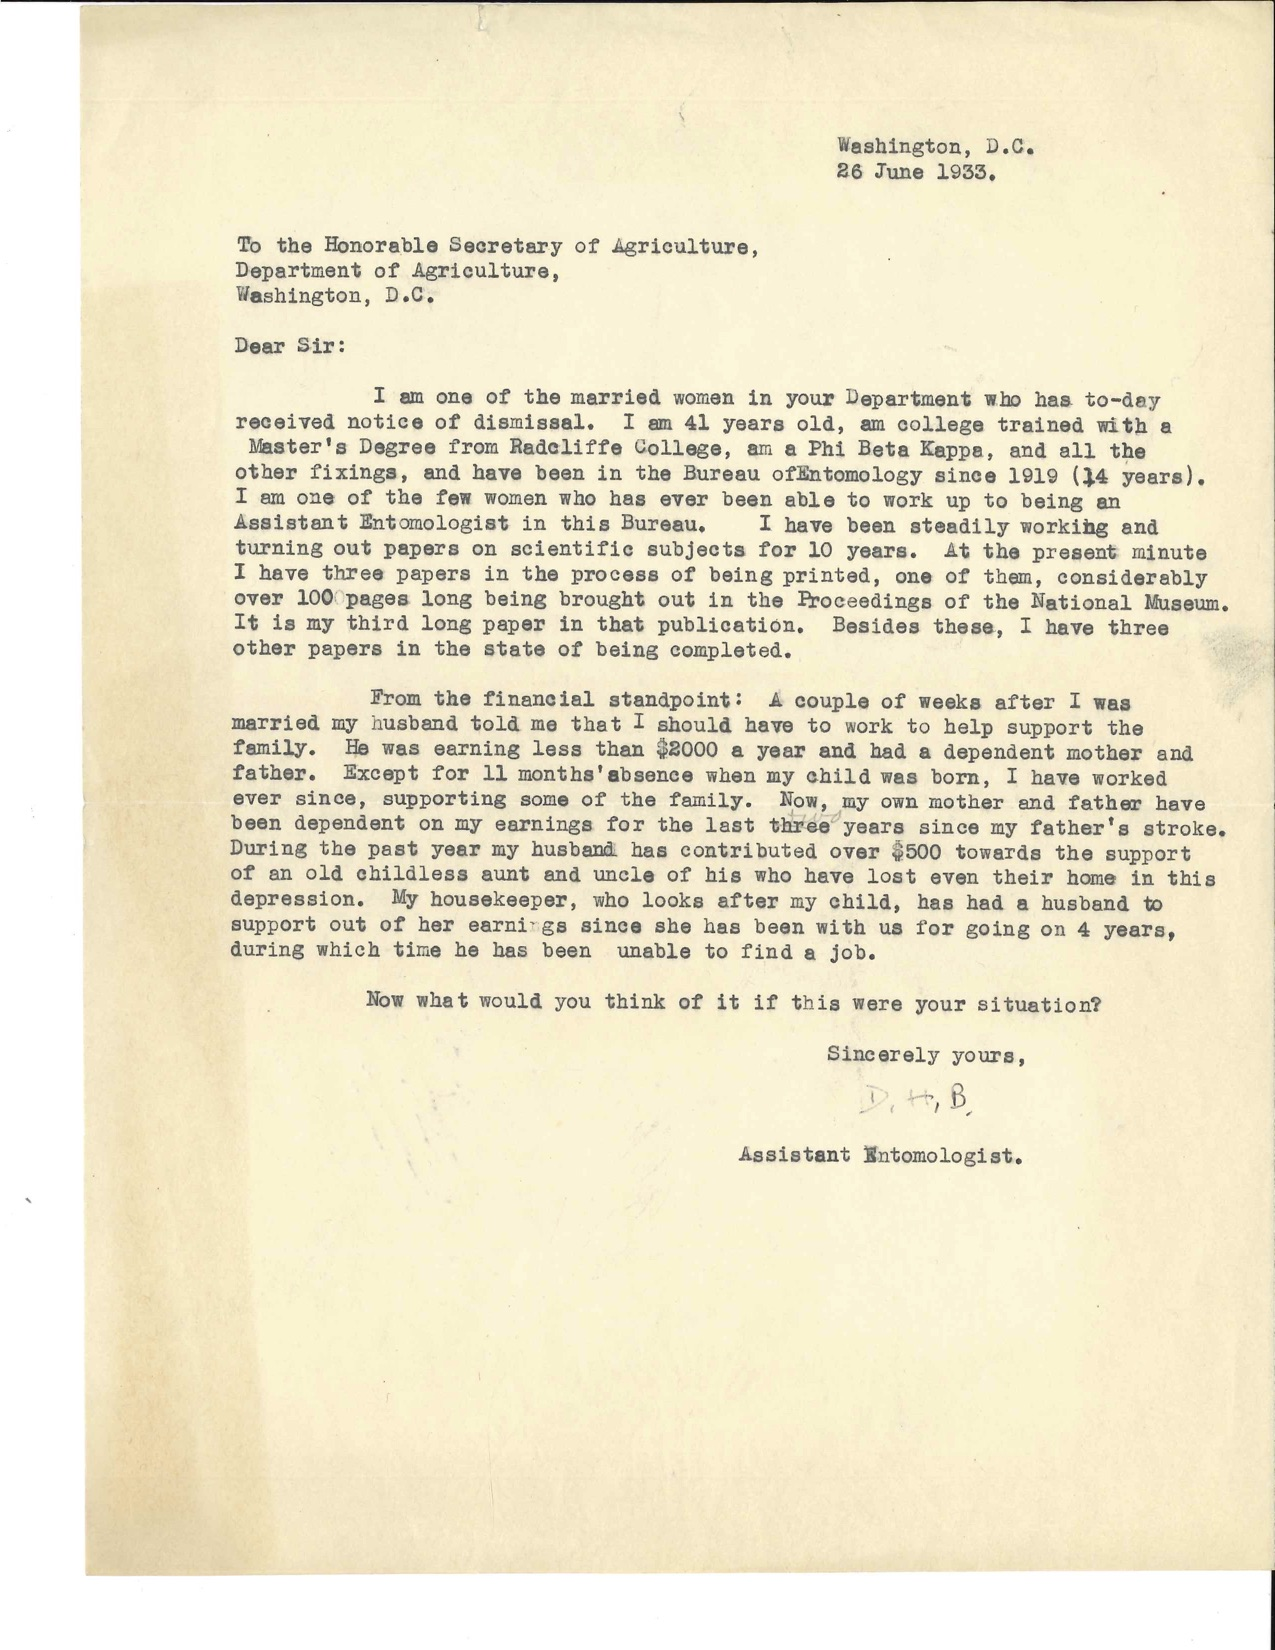 Letter dated June 26, 1933 from Doris Holmes Blake about notice of her dismissal  about her accolade